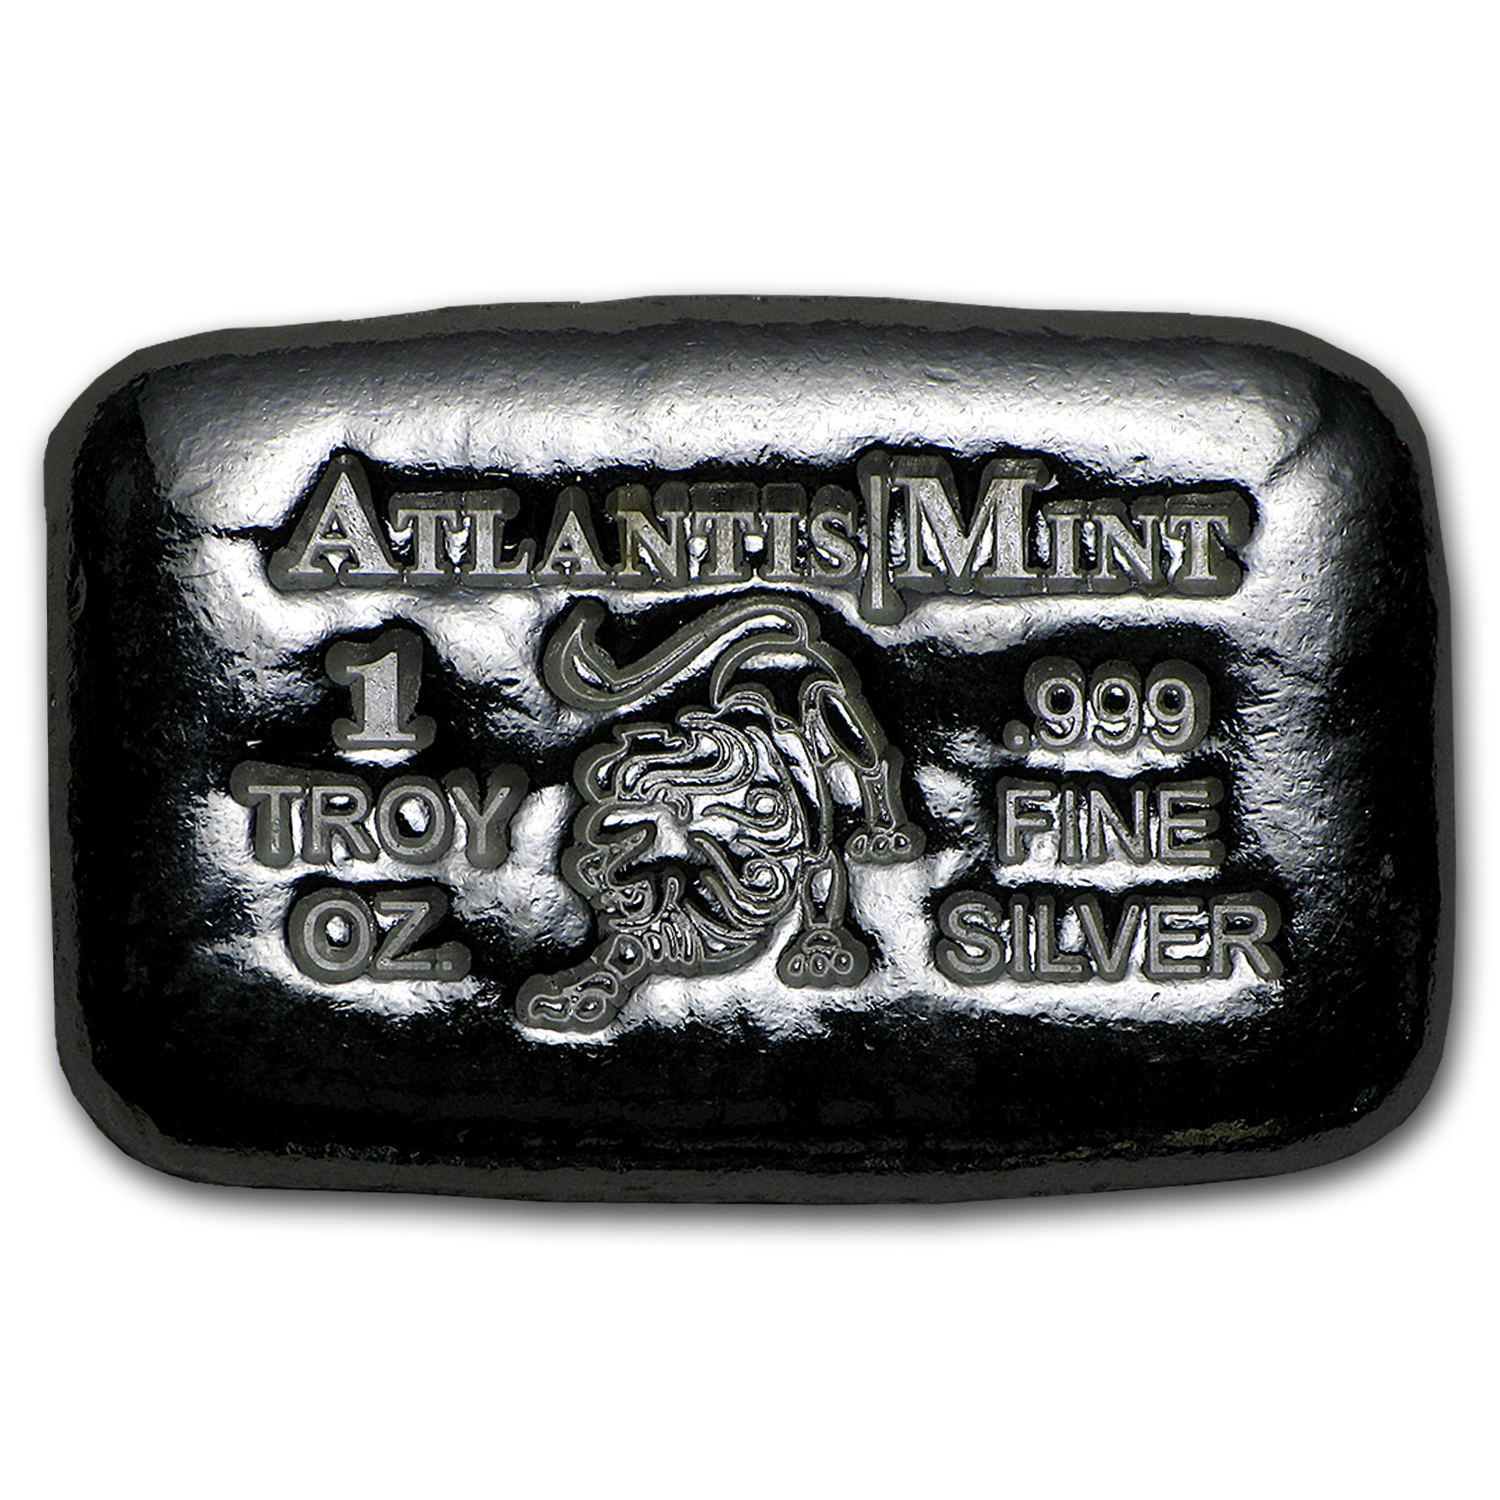 1 oz Silver Bar - Atlantis Mint (Zodiac Series, Leo)